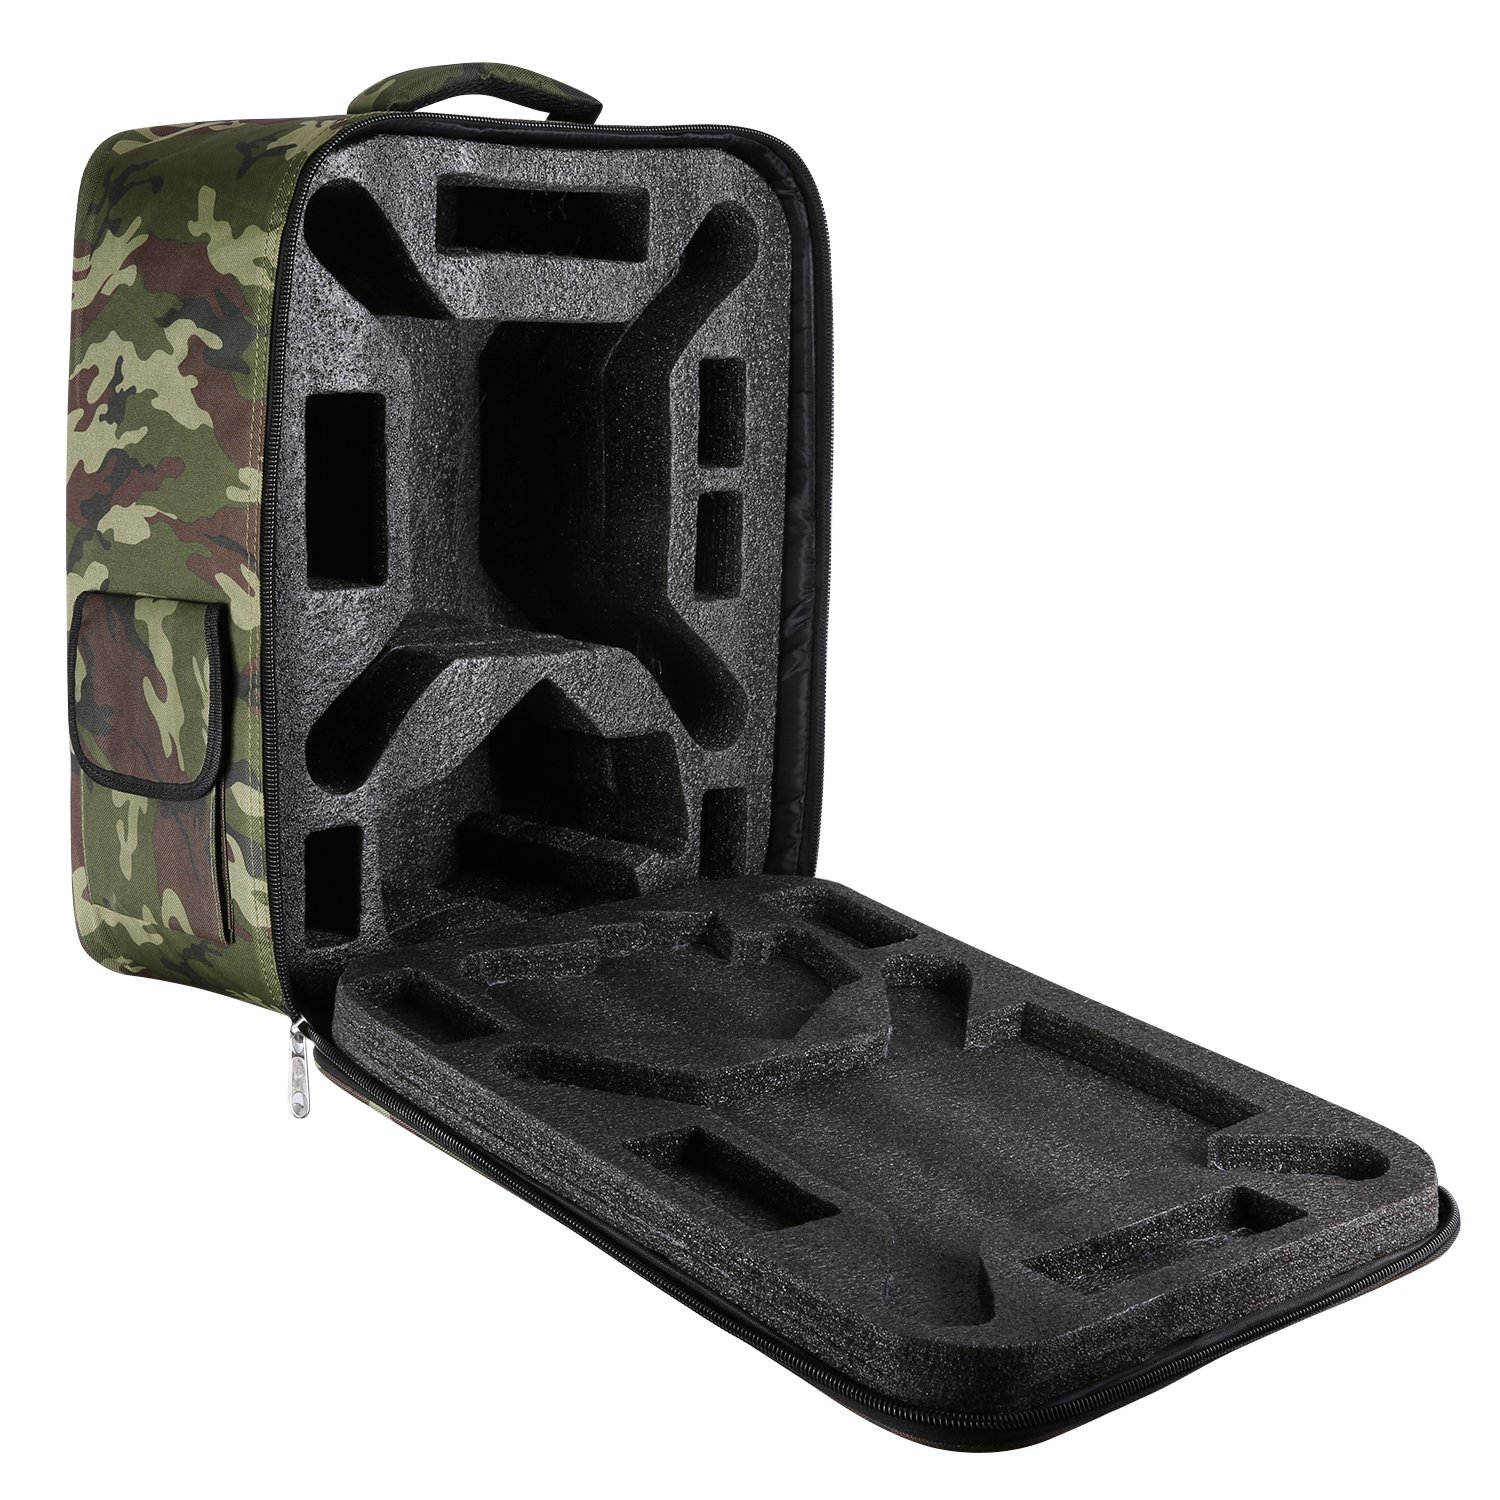 Neewer Multi Function Waterproof Backpack Bag Case for DJI Phantom 1 FC40 2 2 Vision 2 Vision 3 DJI 3 Professional Advanced Standard 4K Cameras and Accessories Camouflage